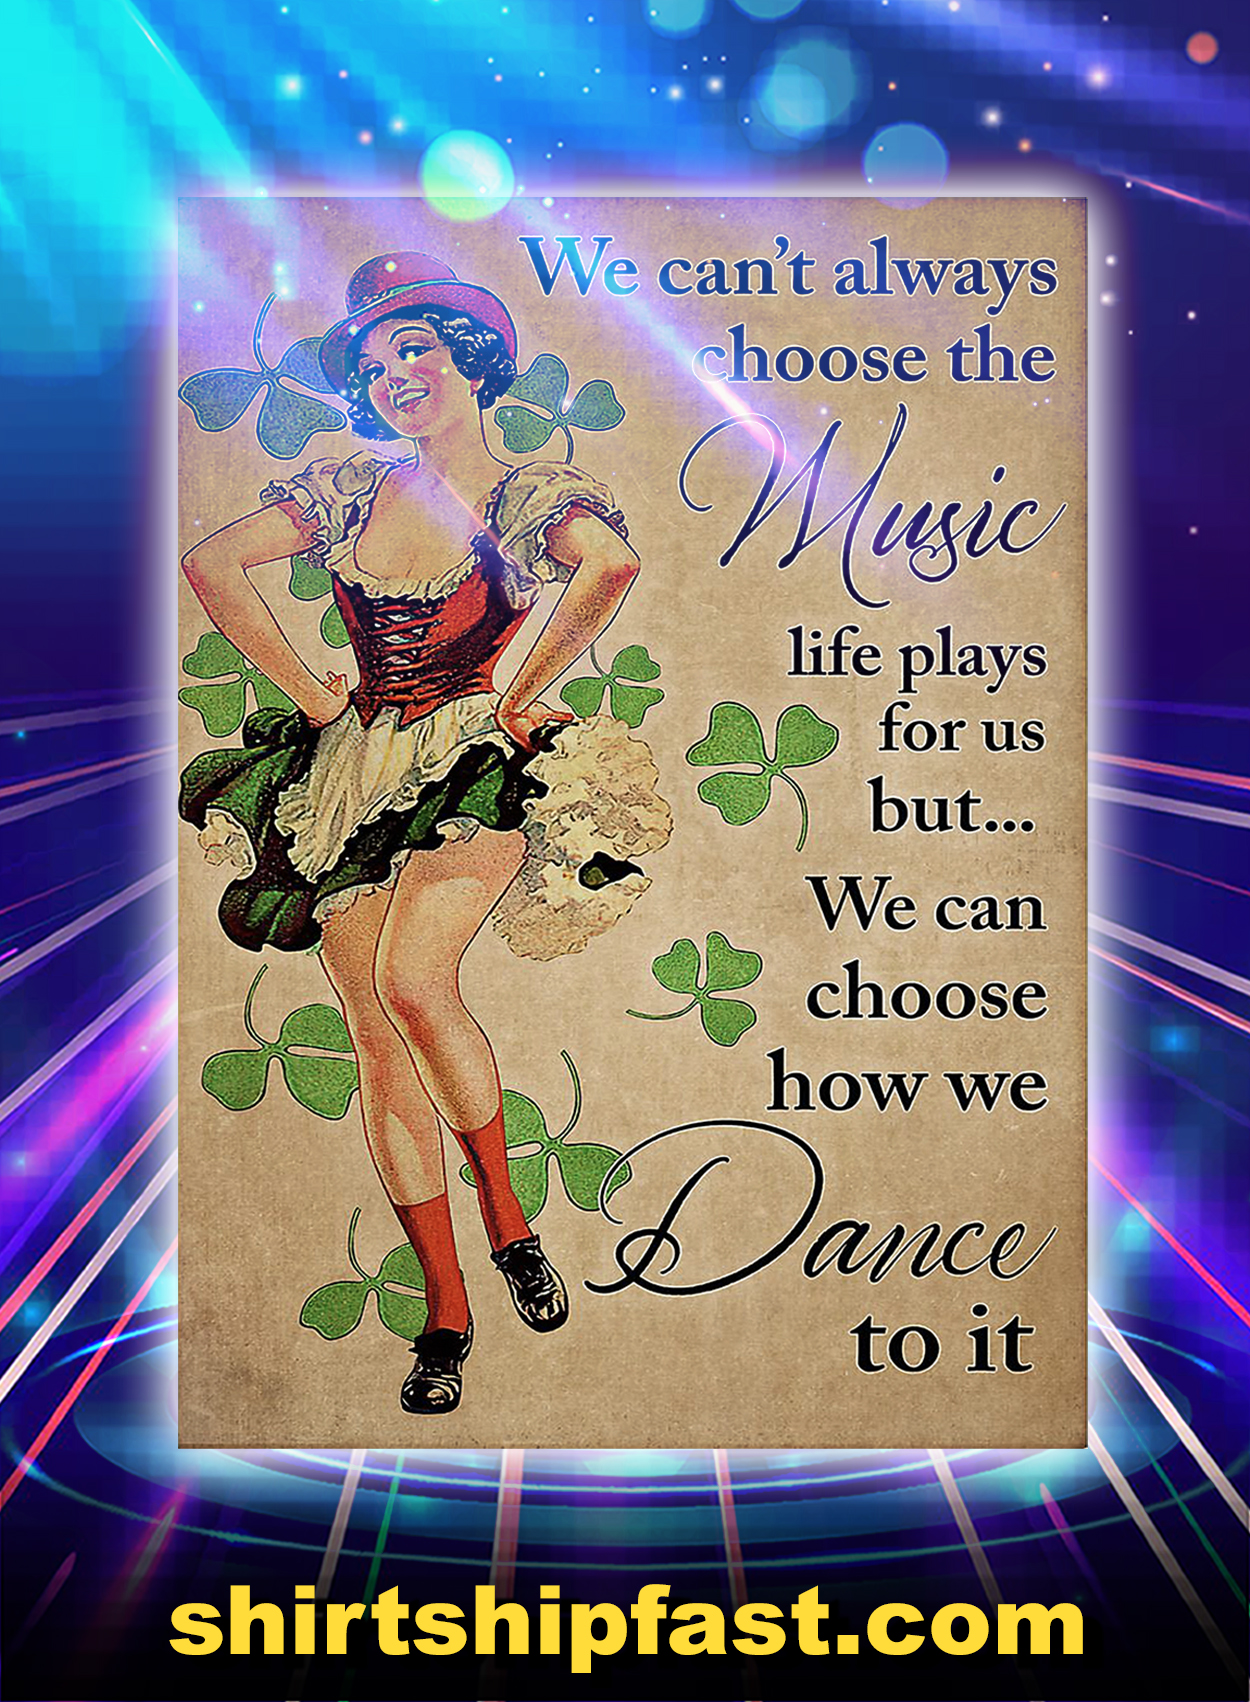 Irish dancing we can't always choose the music life plays for us poster - A3